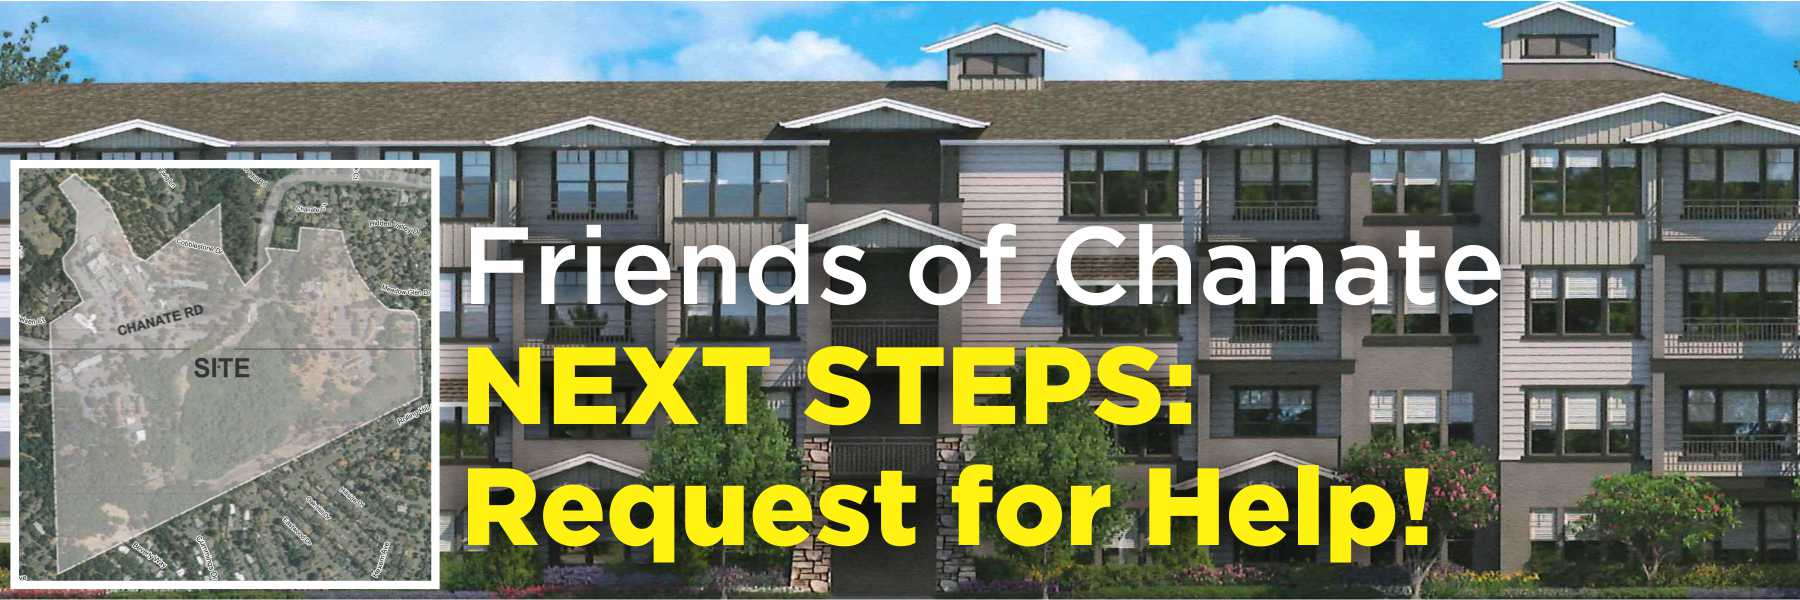 Friends of Chanate was impressed and heartened by the 150+ people who took time out of their busy Sunday to attend our Neighborhood Meeting on May 20th. Clearly there is interest in what is happening with this property and we were happy to receive so many questions asking how you can help.